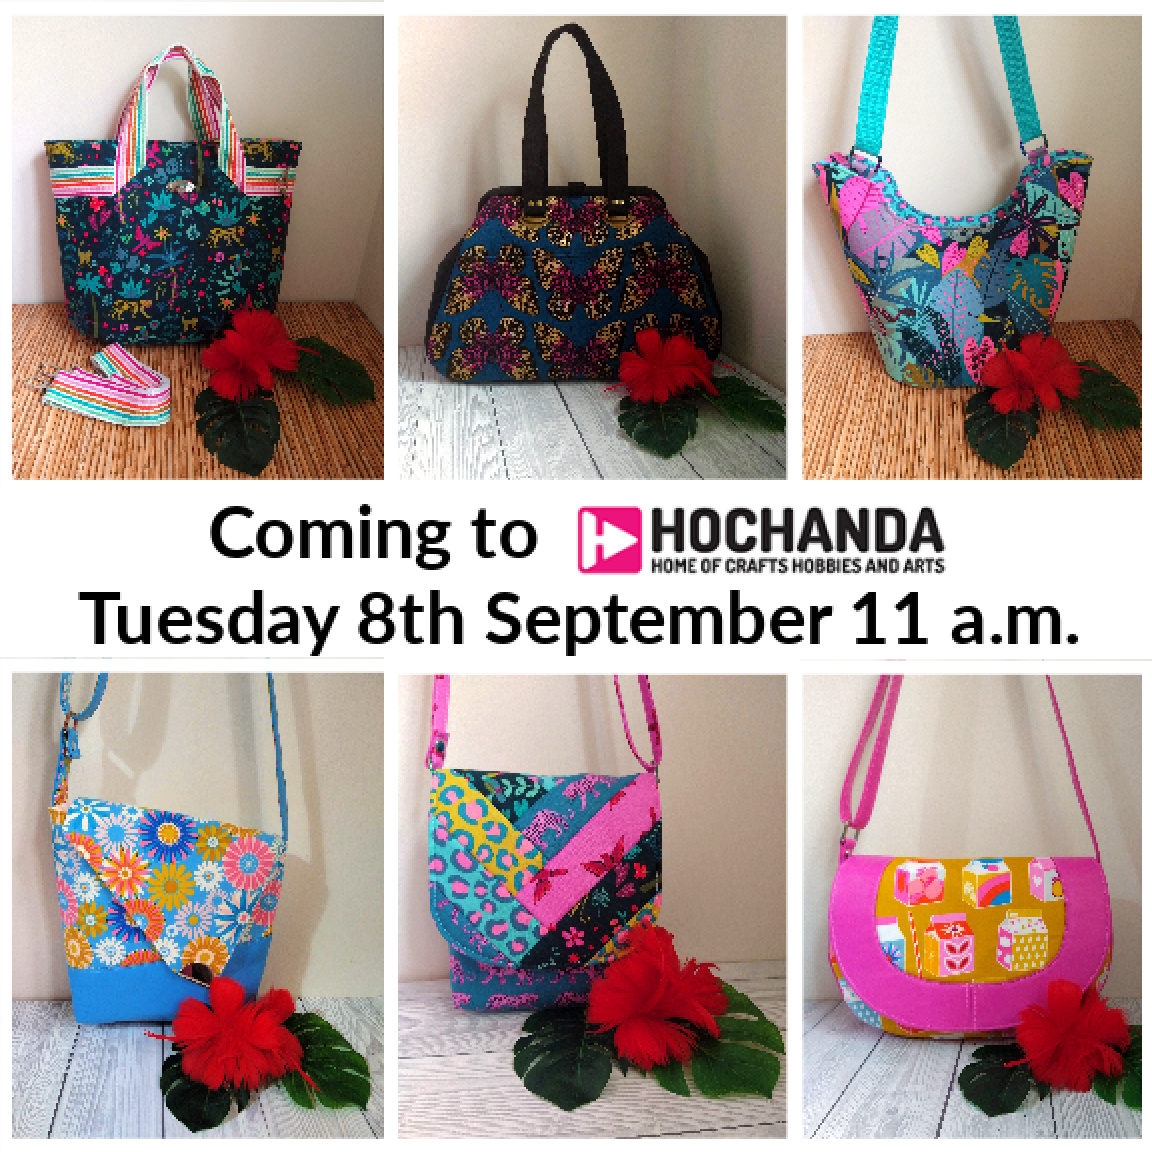 Sewing Patterns by Mrs H on Hochanda TV